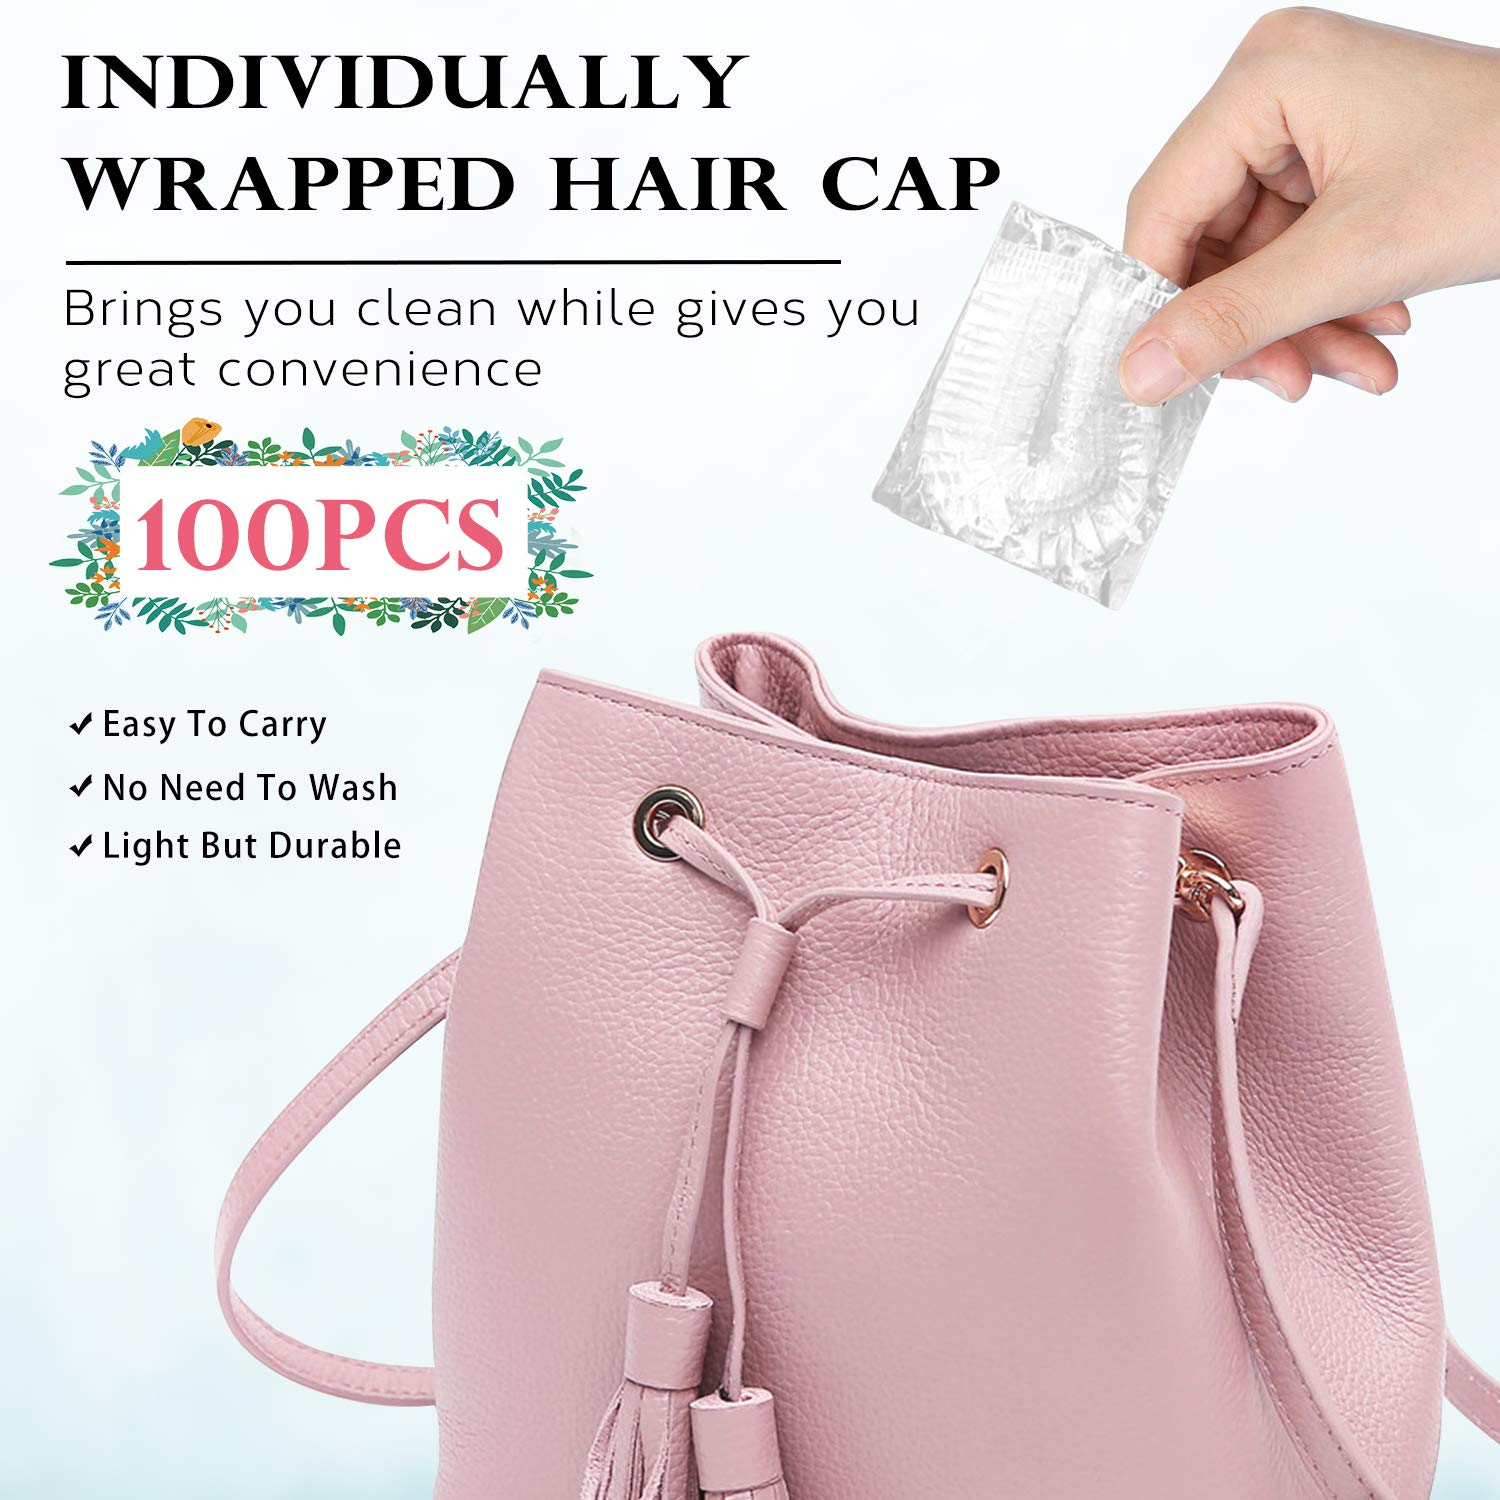 VEGOLS 100Pcs Disposable Shower Caps for Women, Individually Wrapped Thickening Elastic Clear Plastic Bath Caps, Portable Waterproof Hair Cap for Travel Spa, Home Use, Hotel and Hair Salon - Clear : Beauty